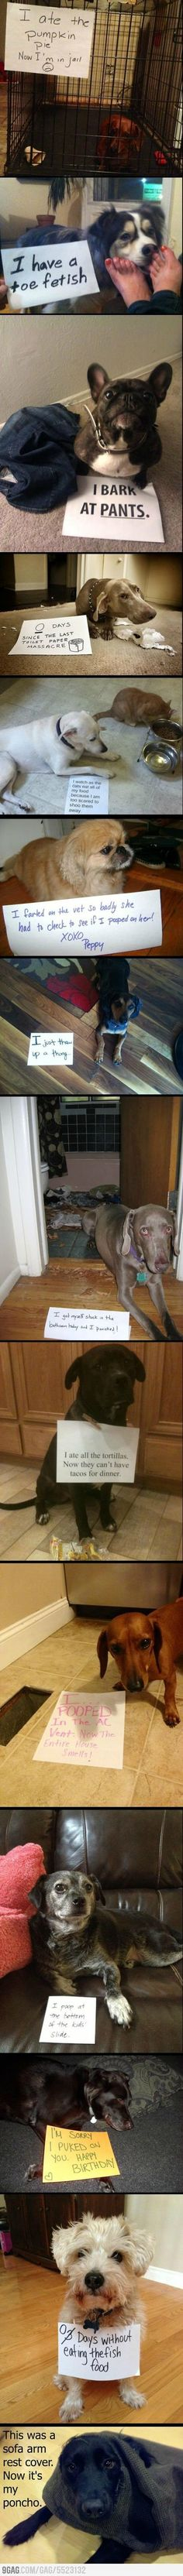 Bad dogs being bad - Imgur